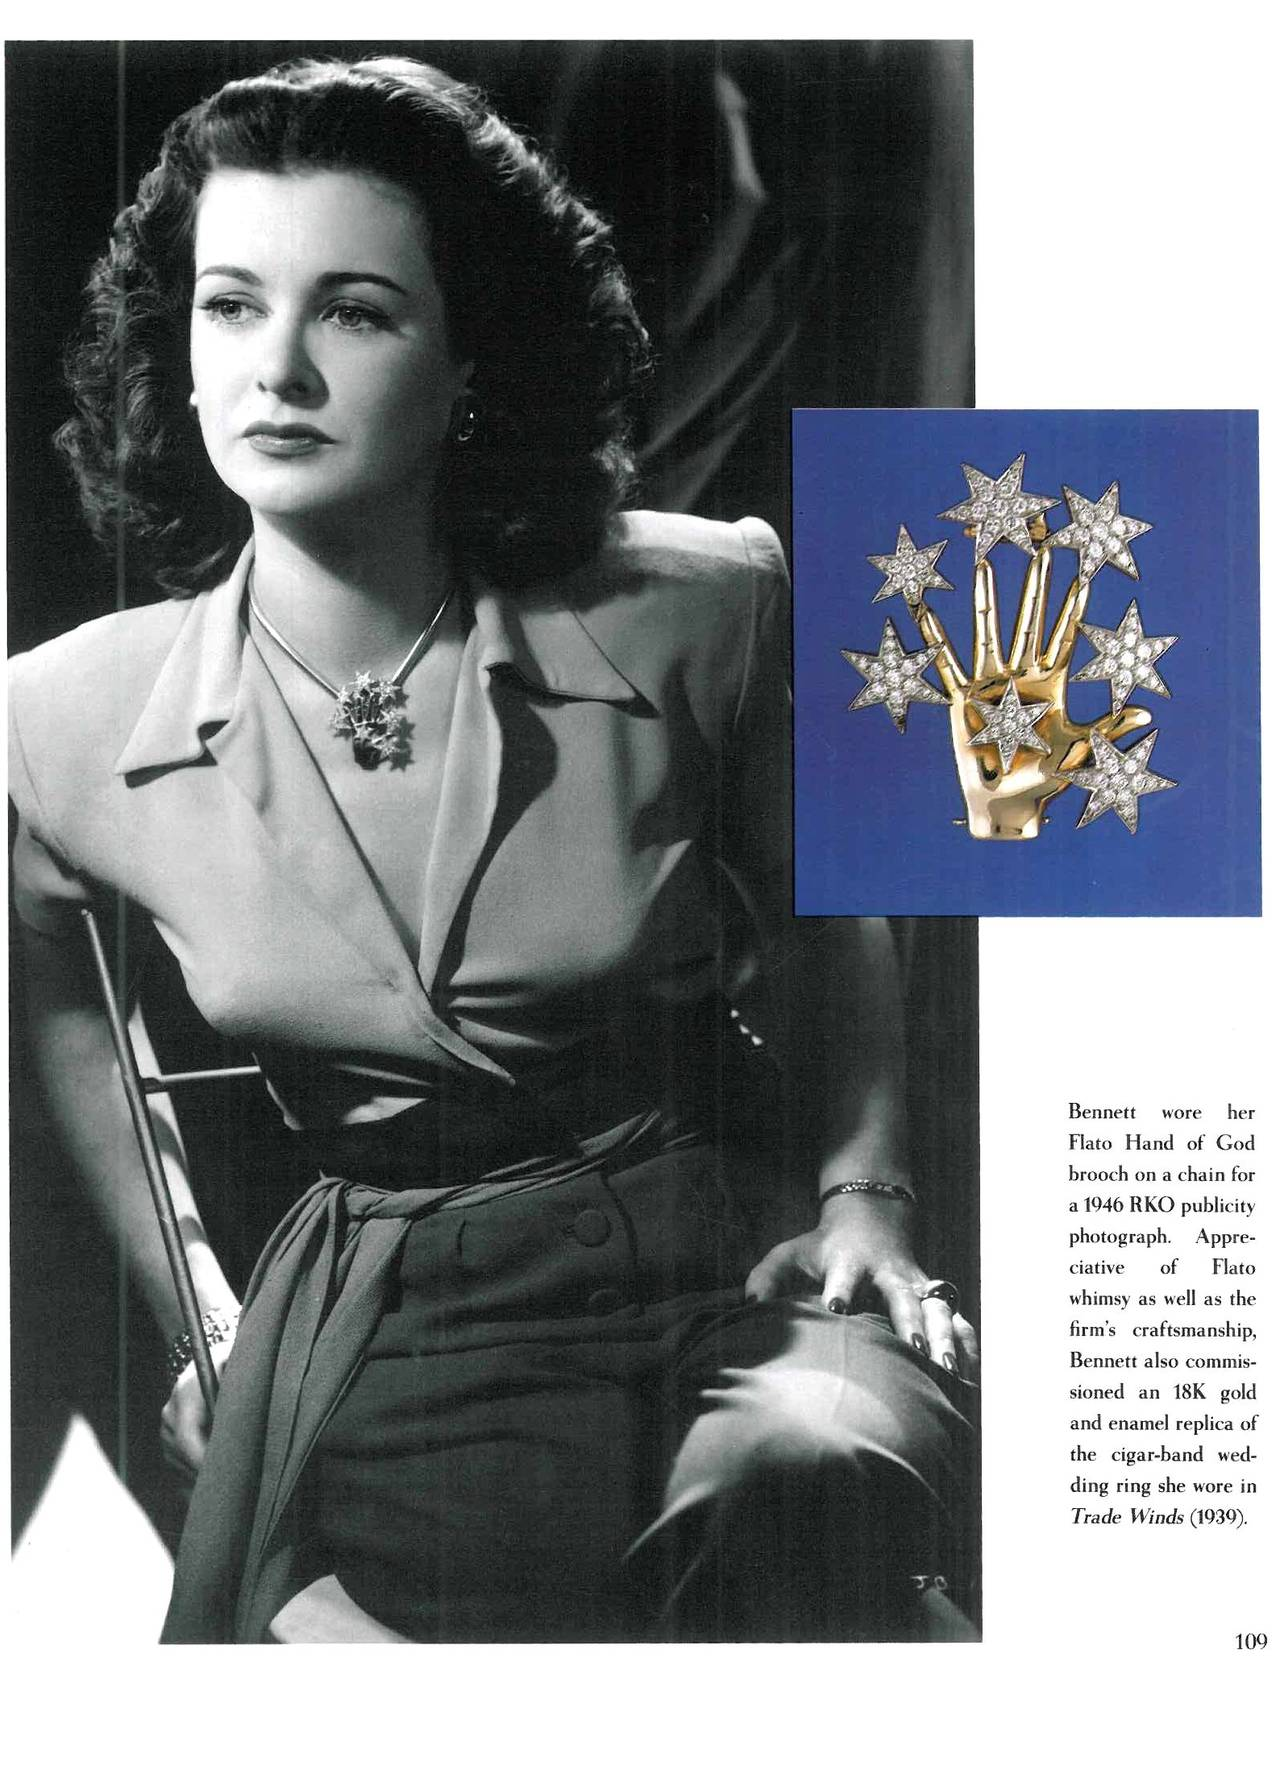 Book of HOLLYWOOD JEWELS - Movies, Jewelry, Stars For Sale 3